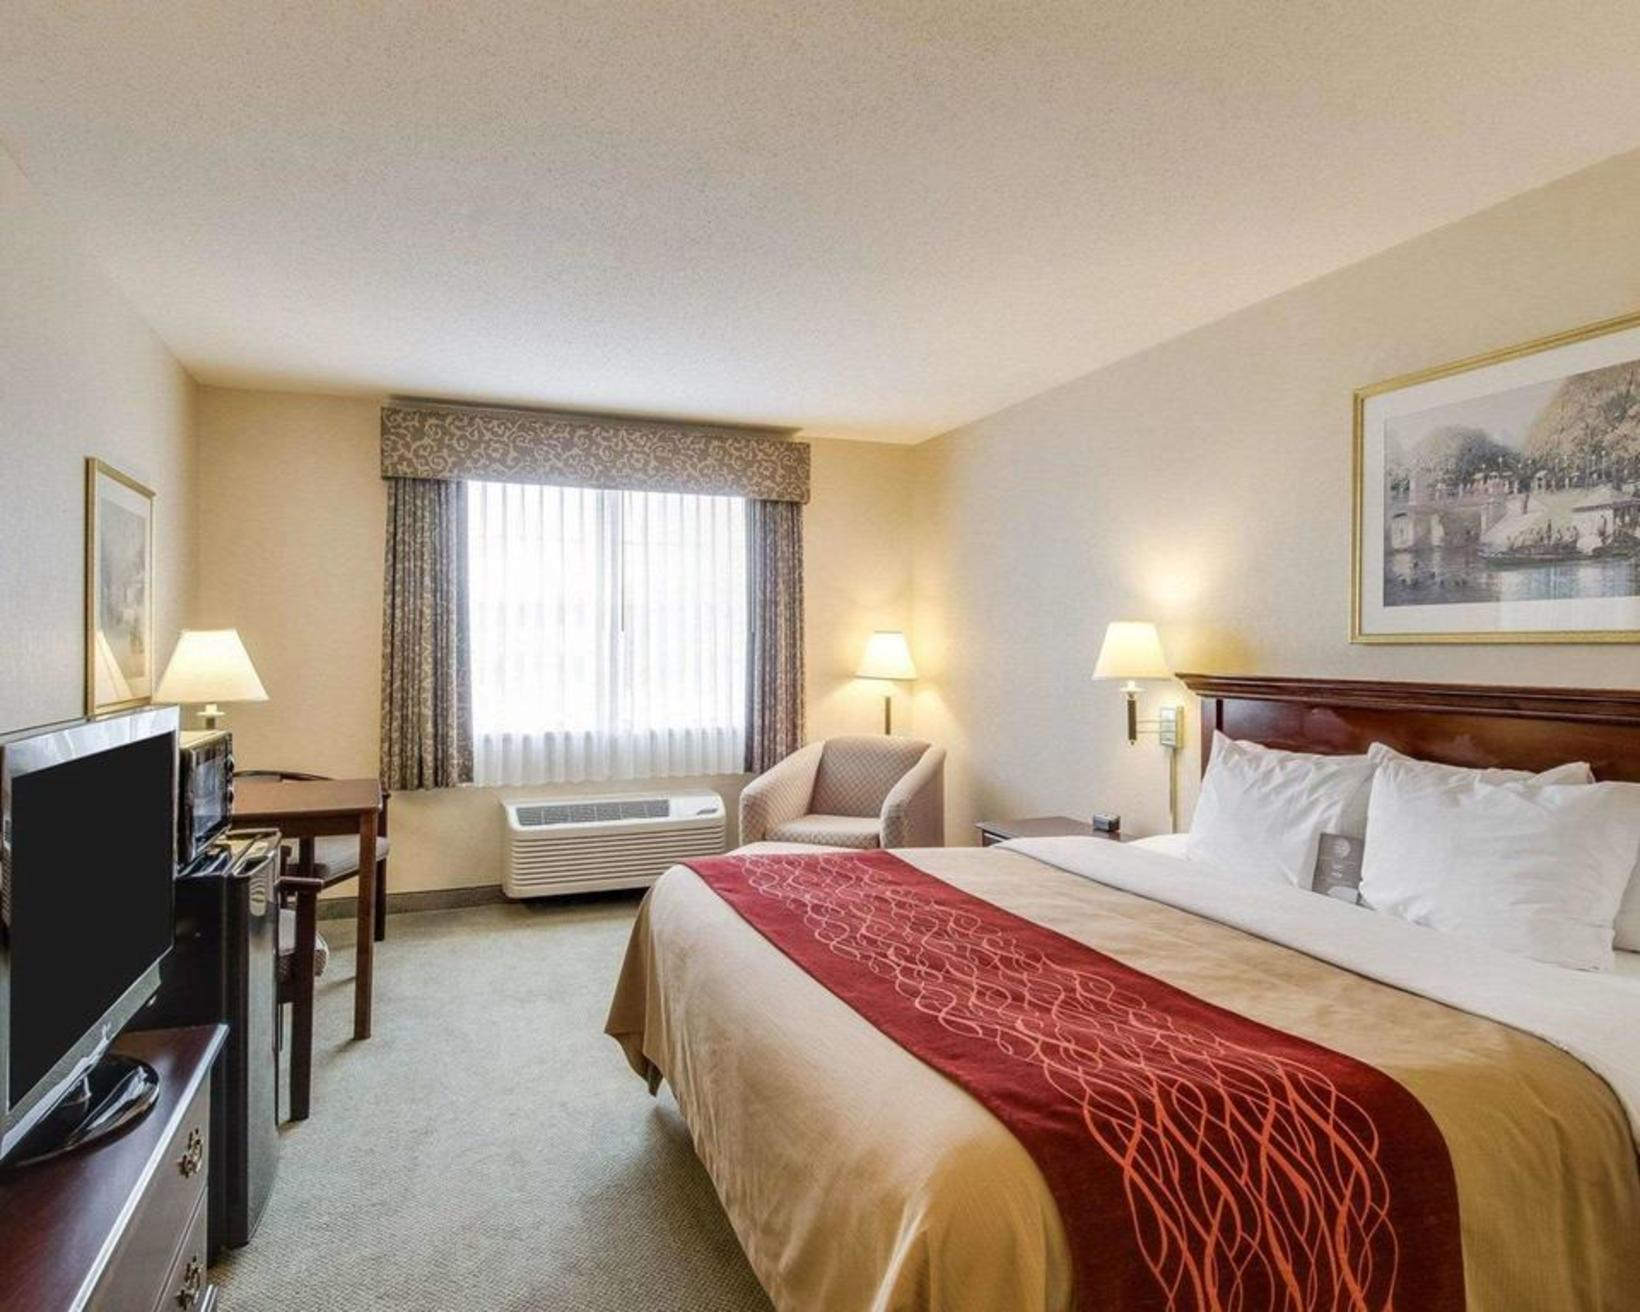 420 Friendly Hotels Plymouth